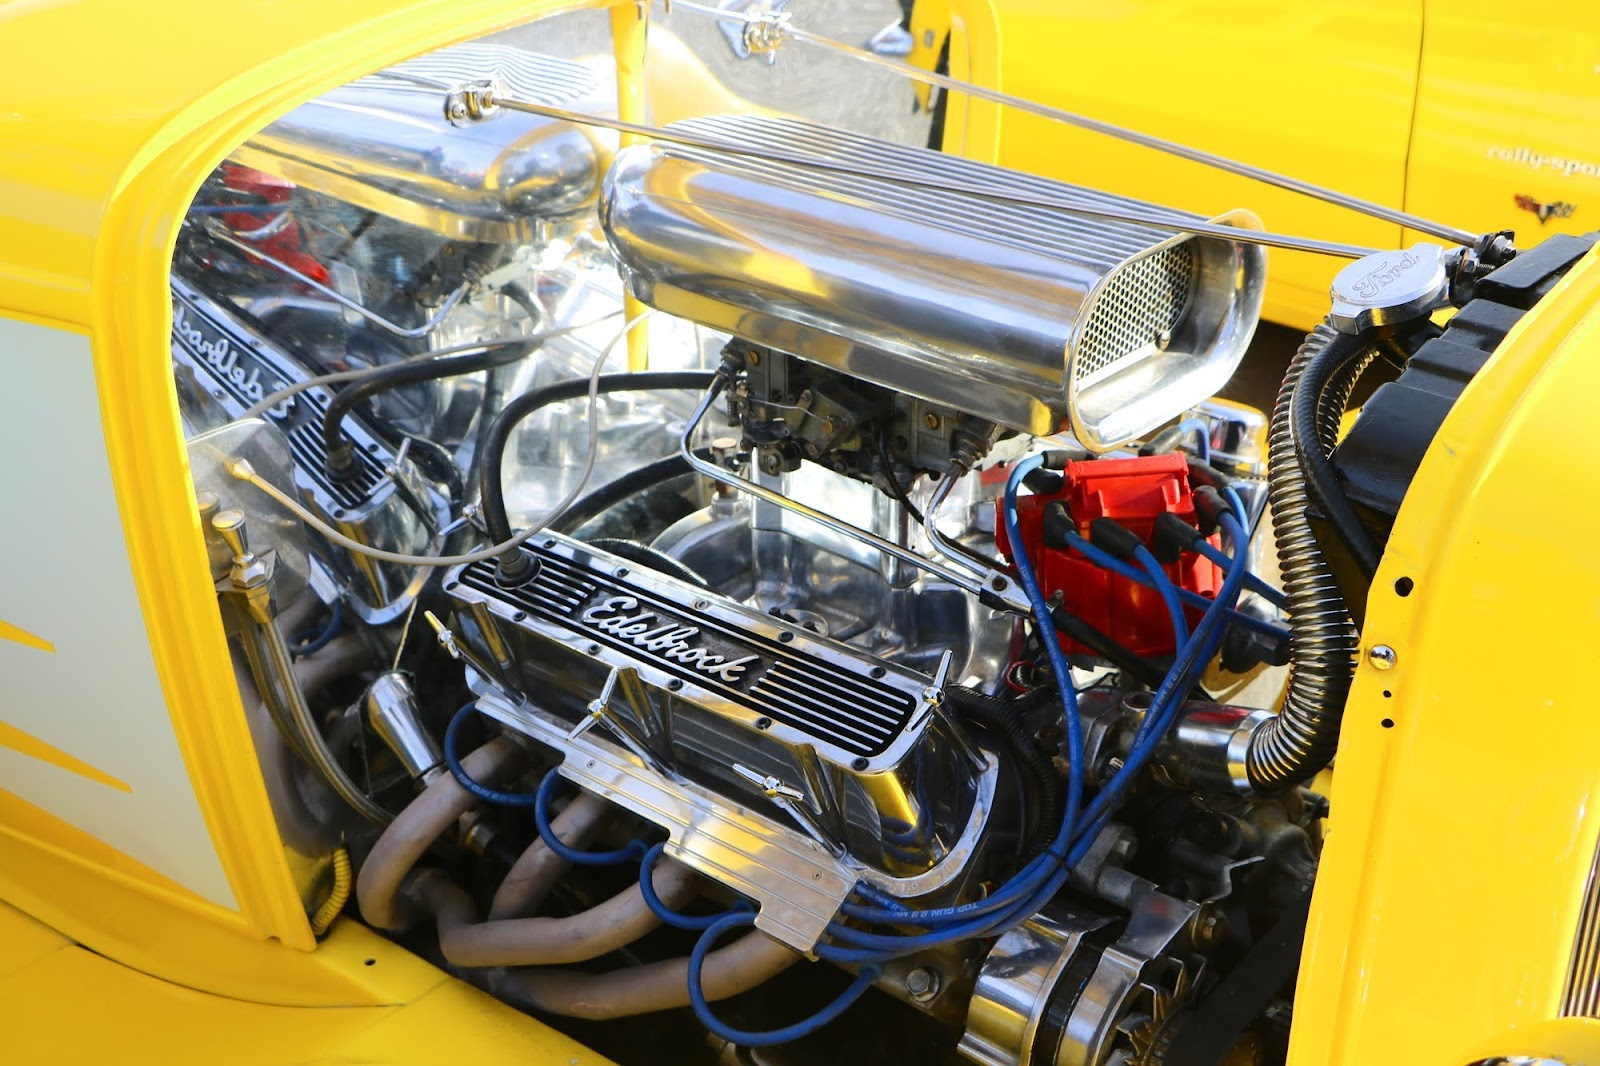 _Detail - Ford Hot Rod Yellow Engine.jpg